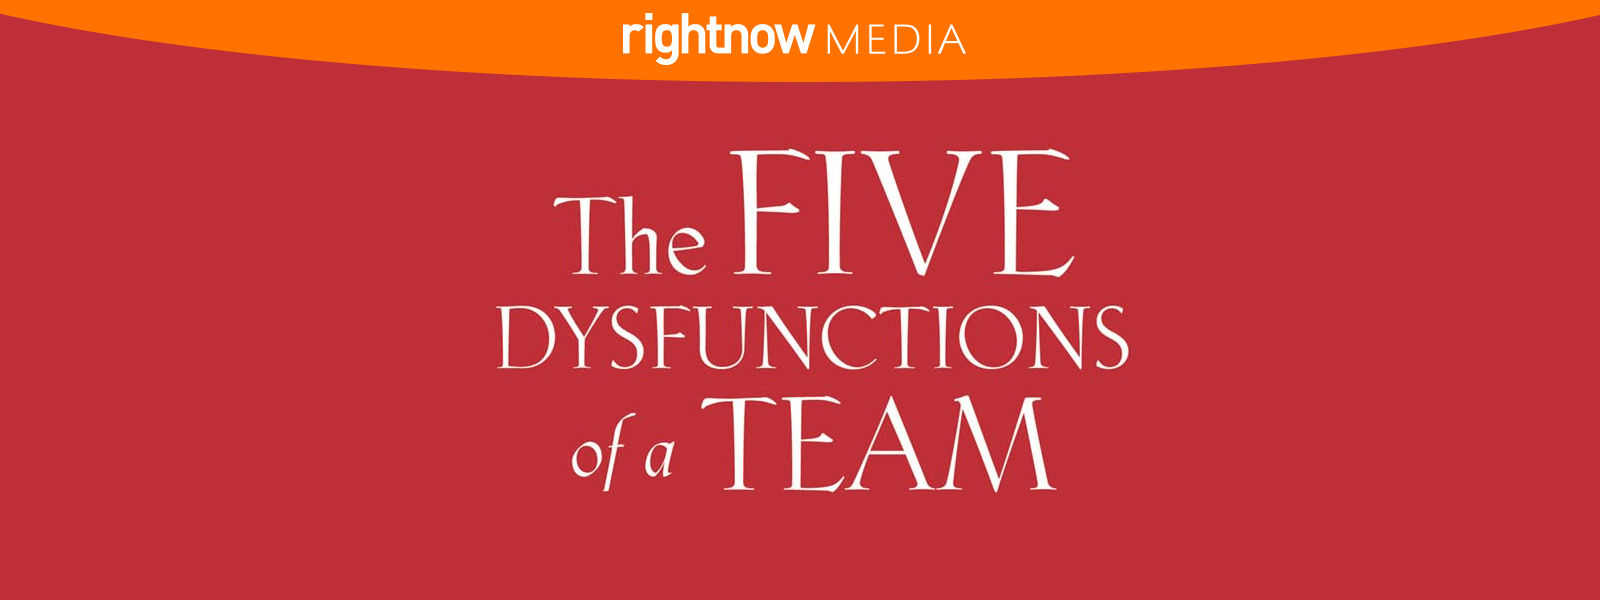 The Five Dysfunctions of a Team (2017)